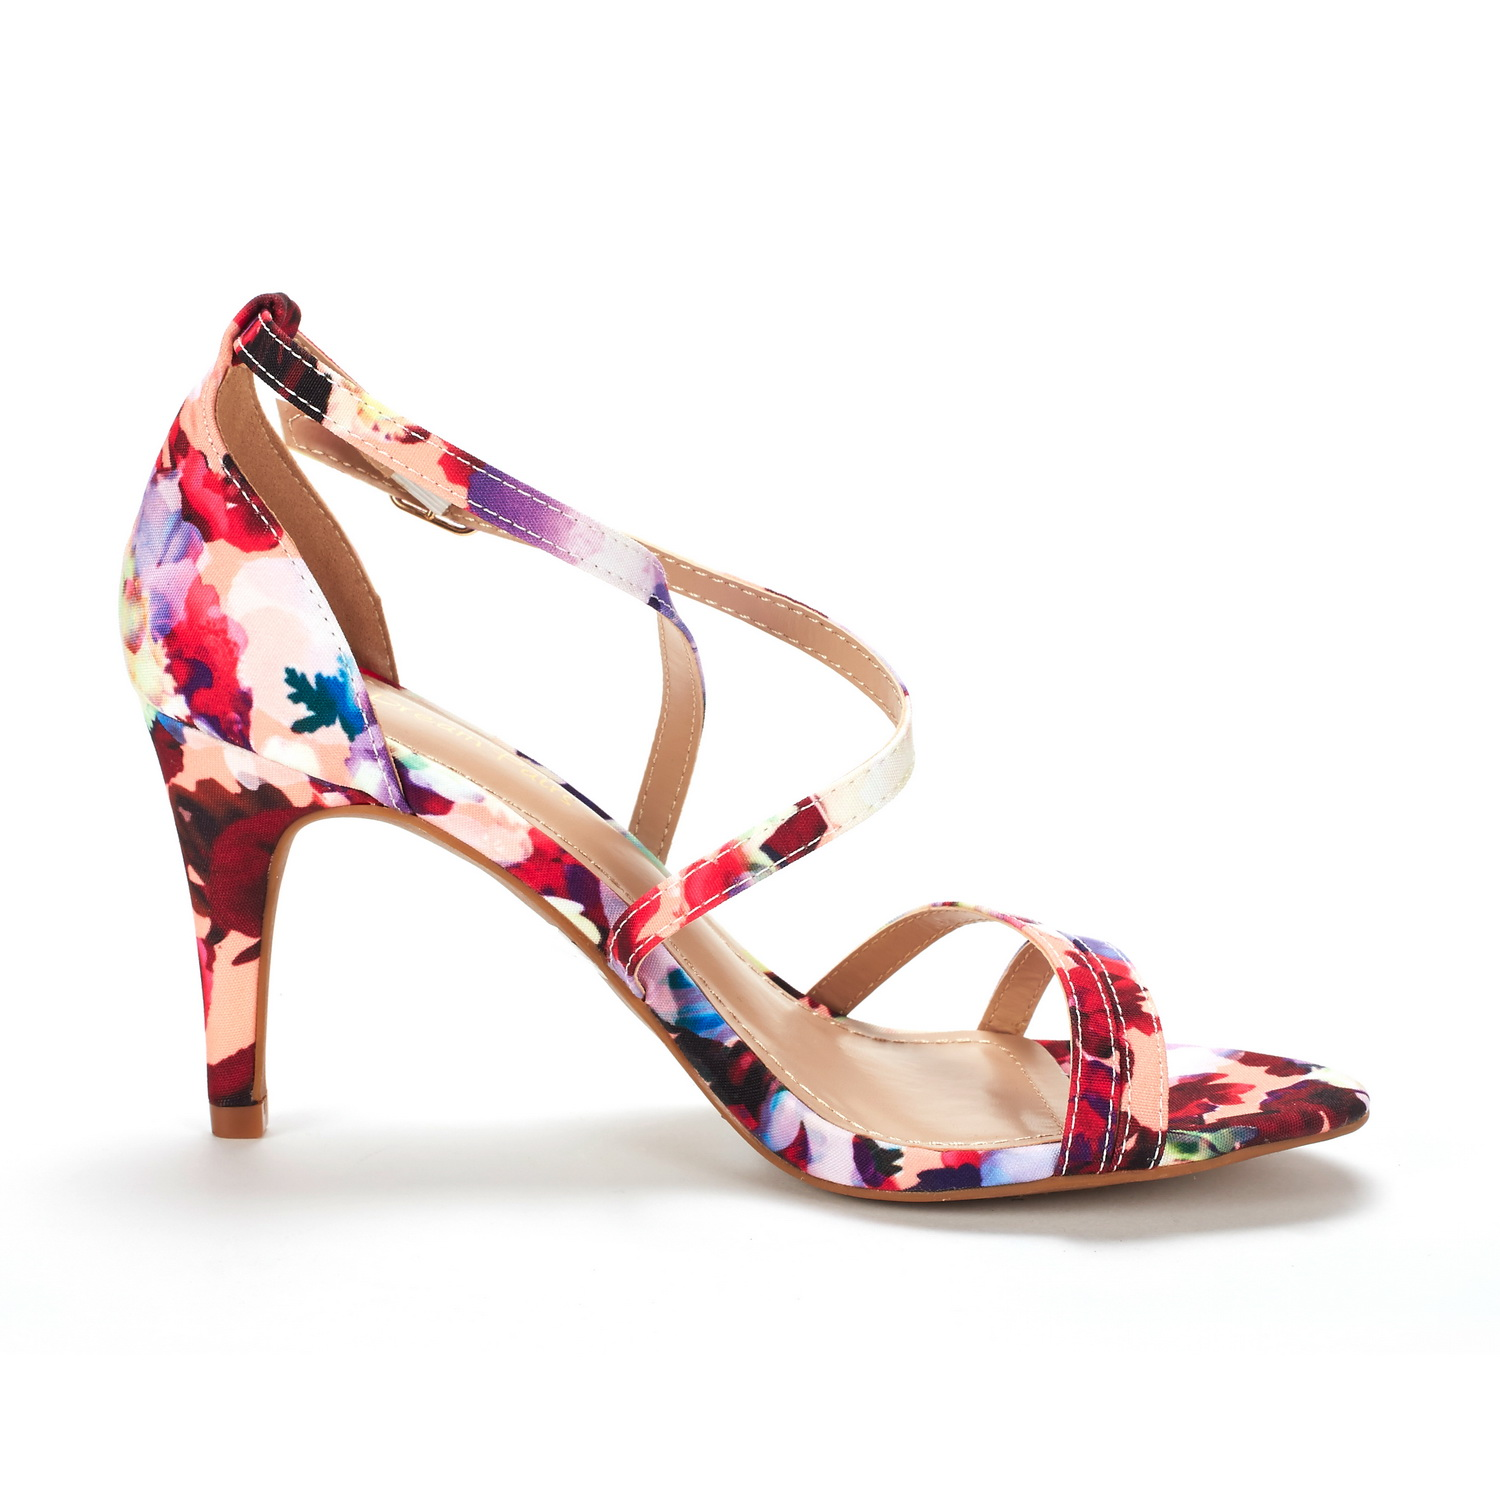 DREAM-PAIRS-Women-039-s-Ankle-Strap-High-Heel-Sandals-Dress-Shoes-Wedding-Party thumbnail 20